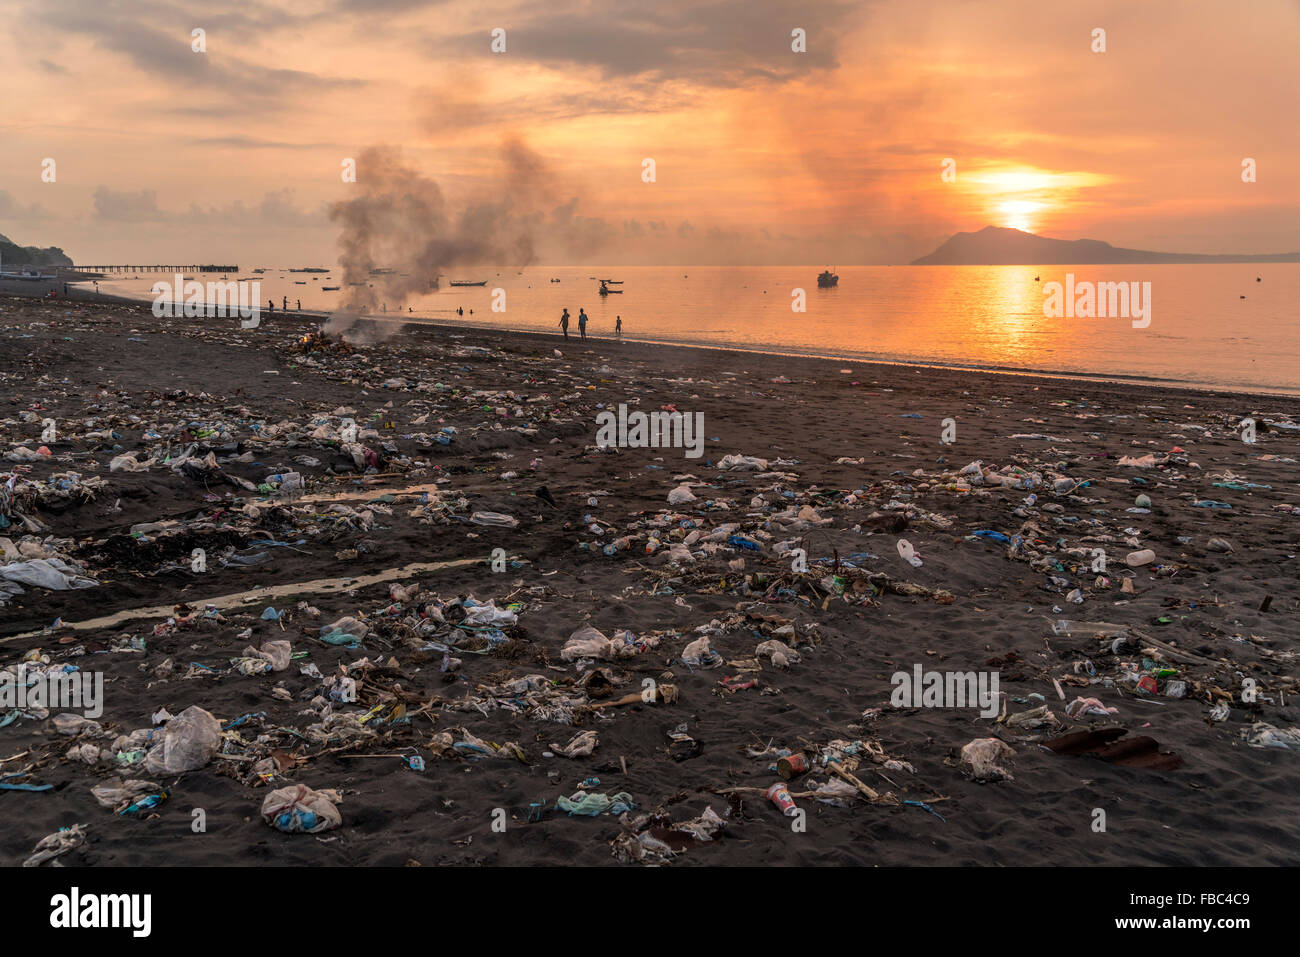 sunset at the polluted beach in Ende, Flores, Indonesia, Asia - Stock Image